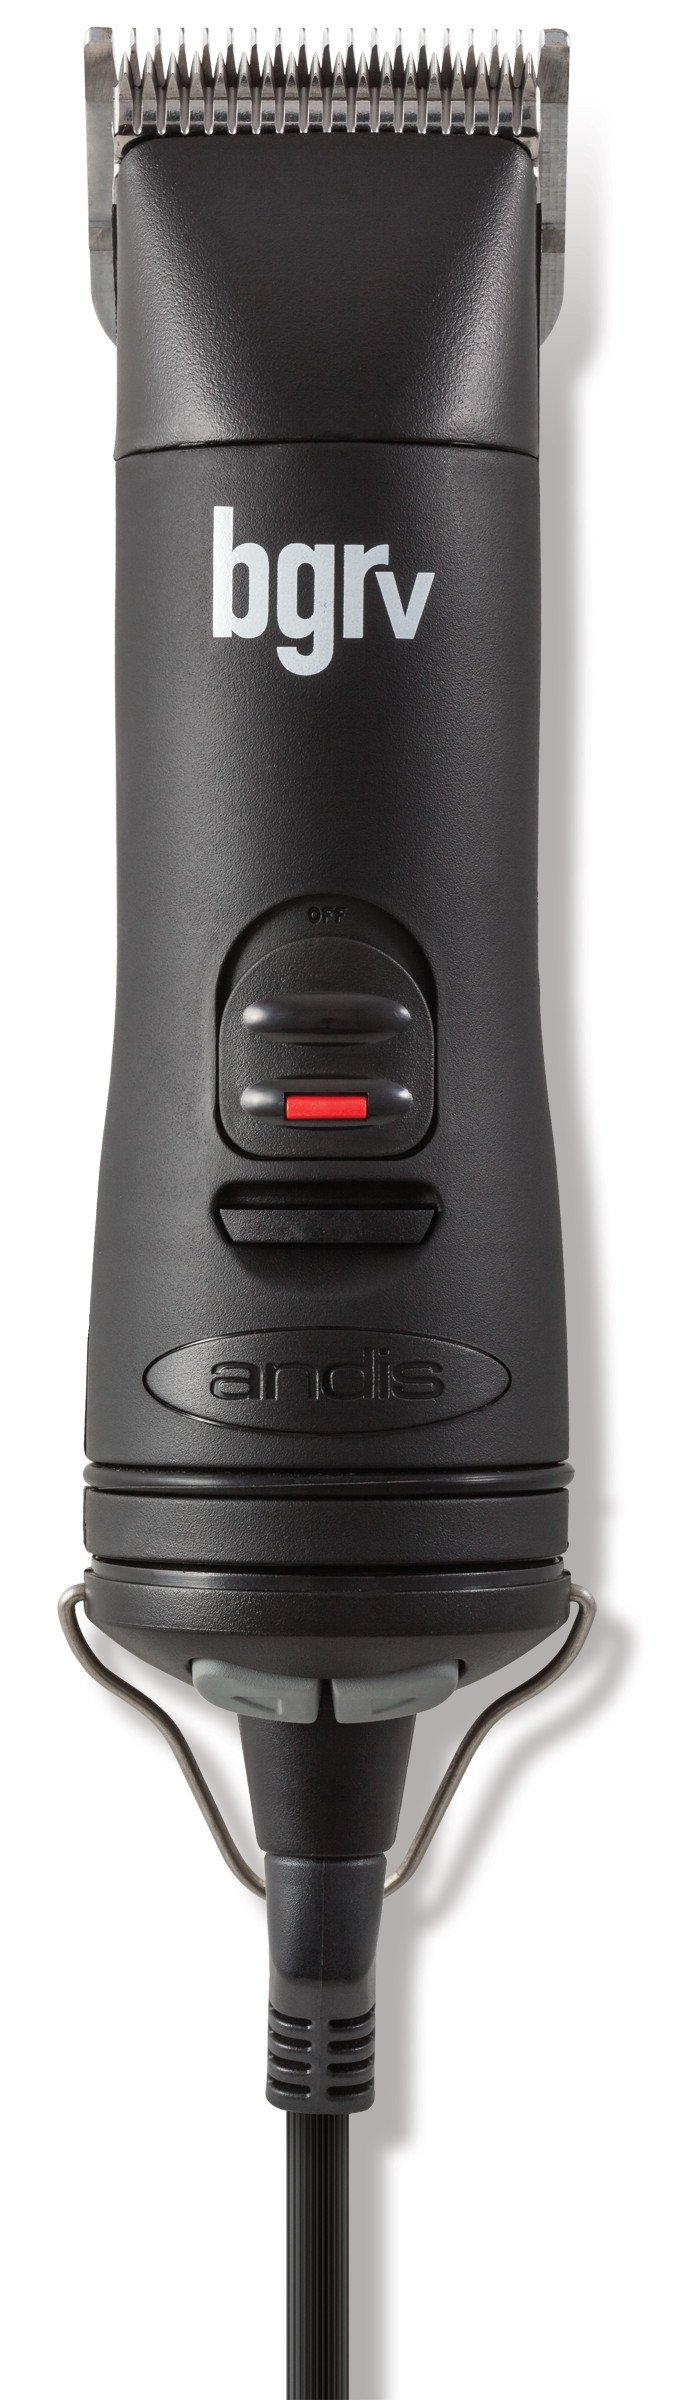 Andis 5-Speed Hair Clipper with Detachable Blade Kit, Black, Model BGRV (63100)